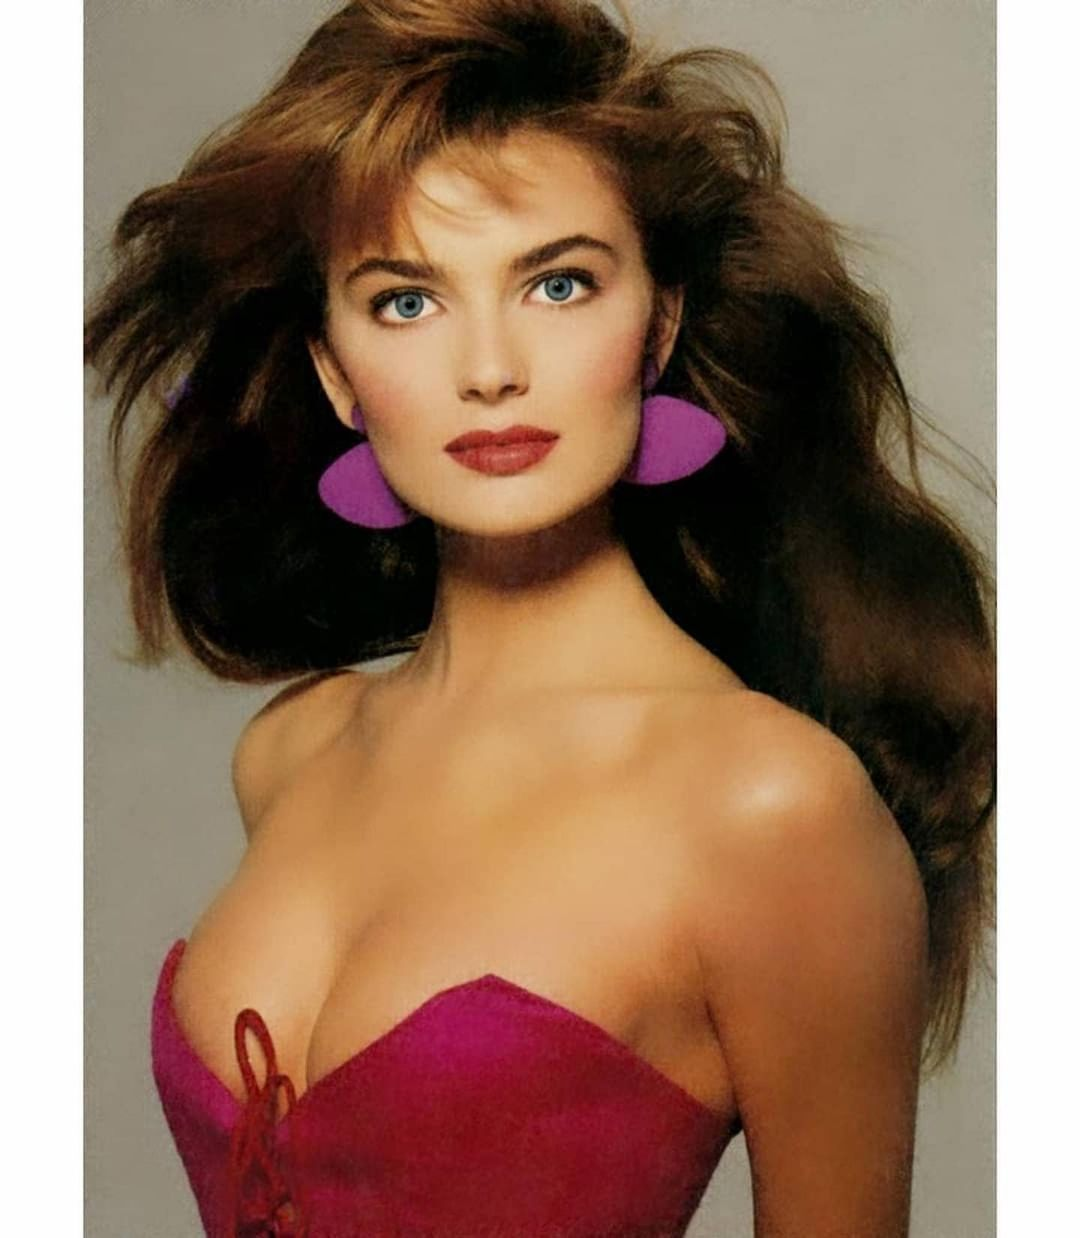 Change And Workout Of Model Paulina Porizkova From Past To Today 5